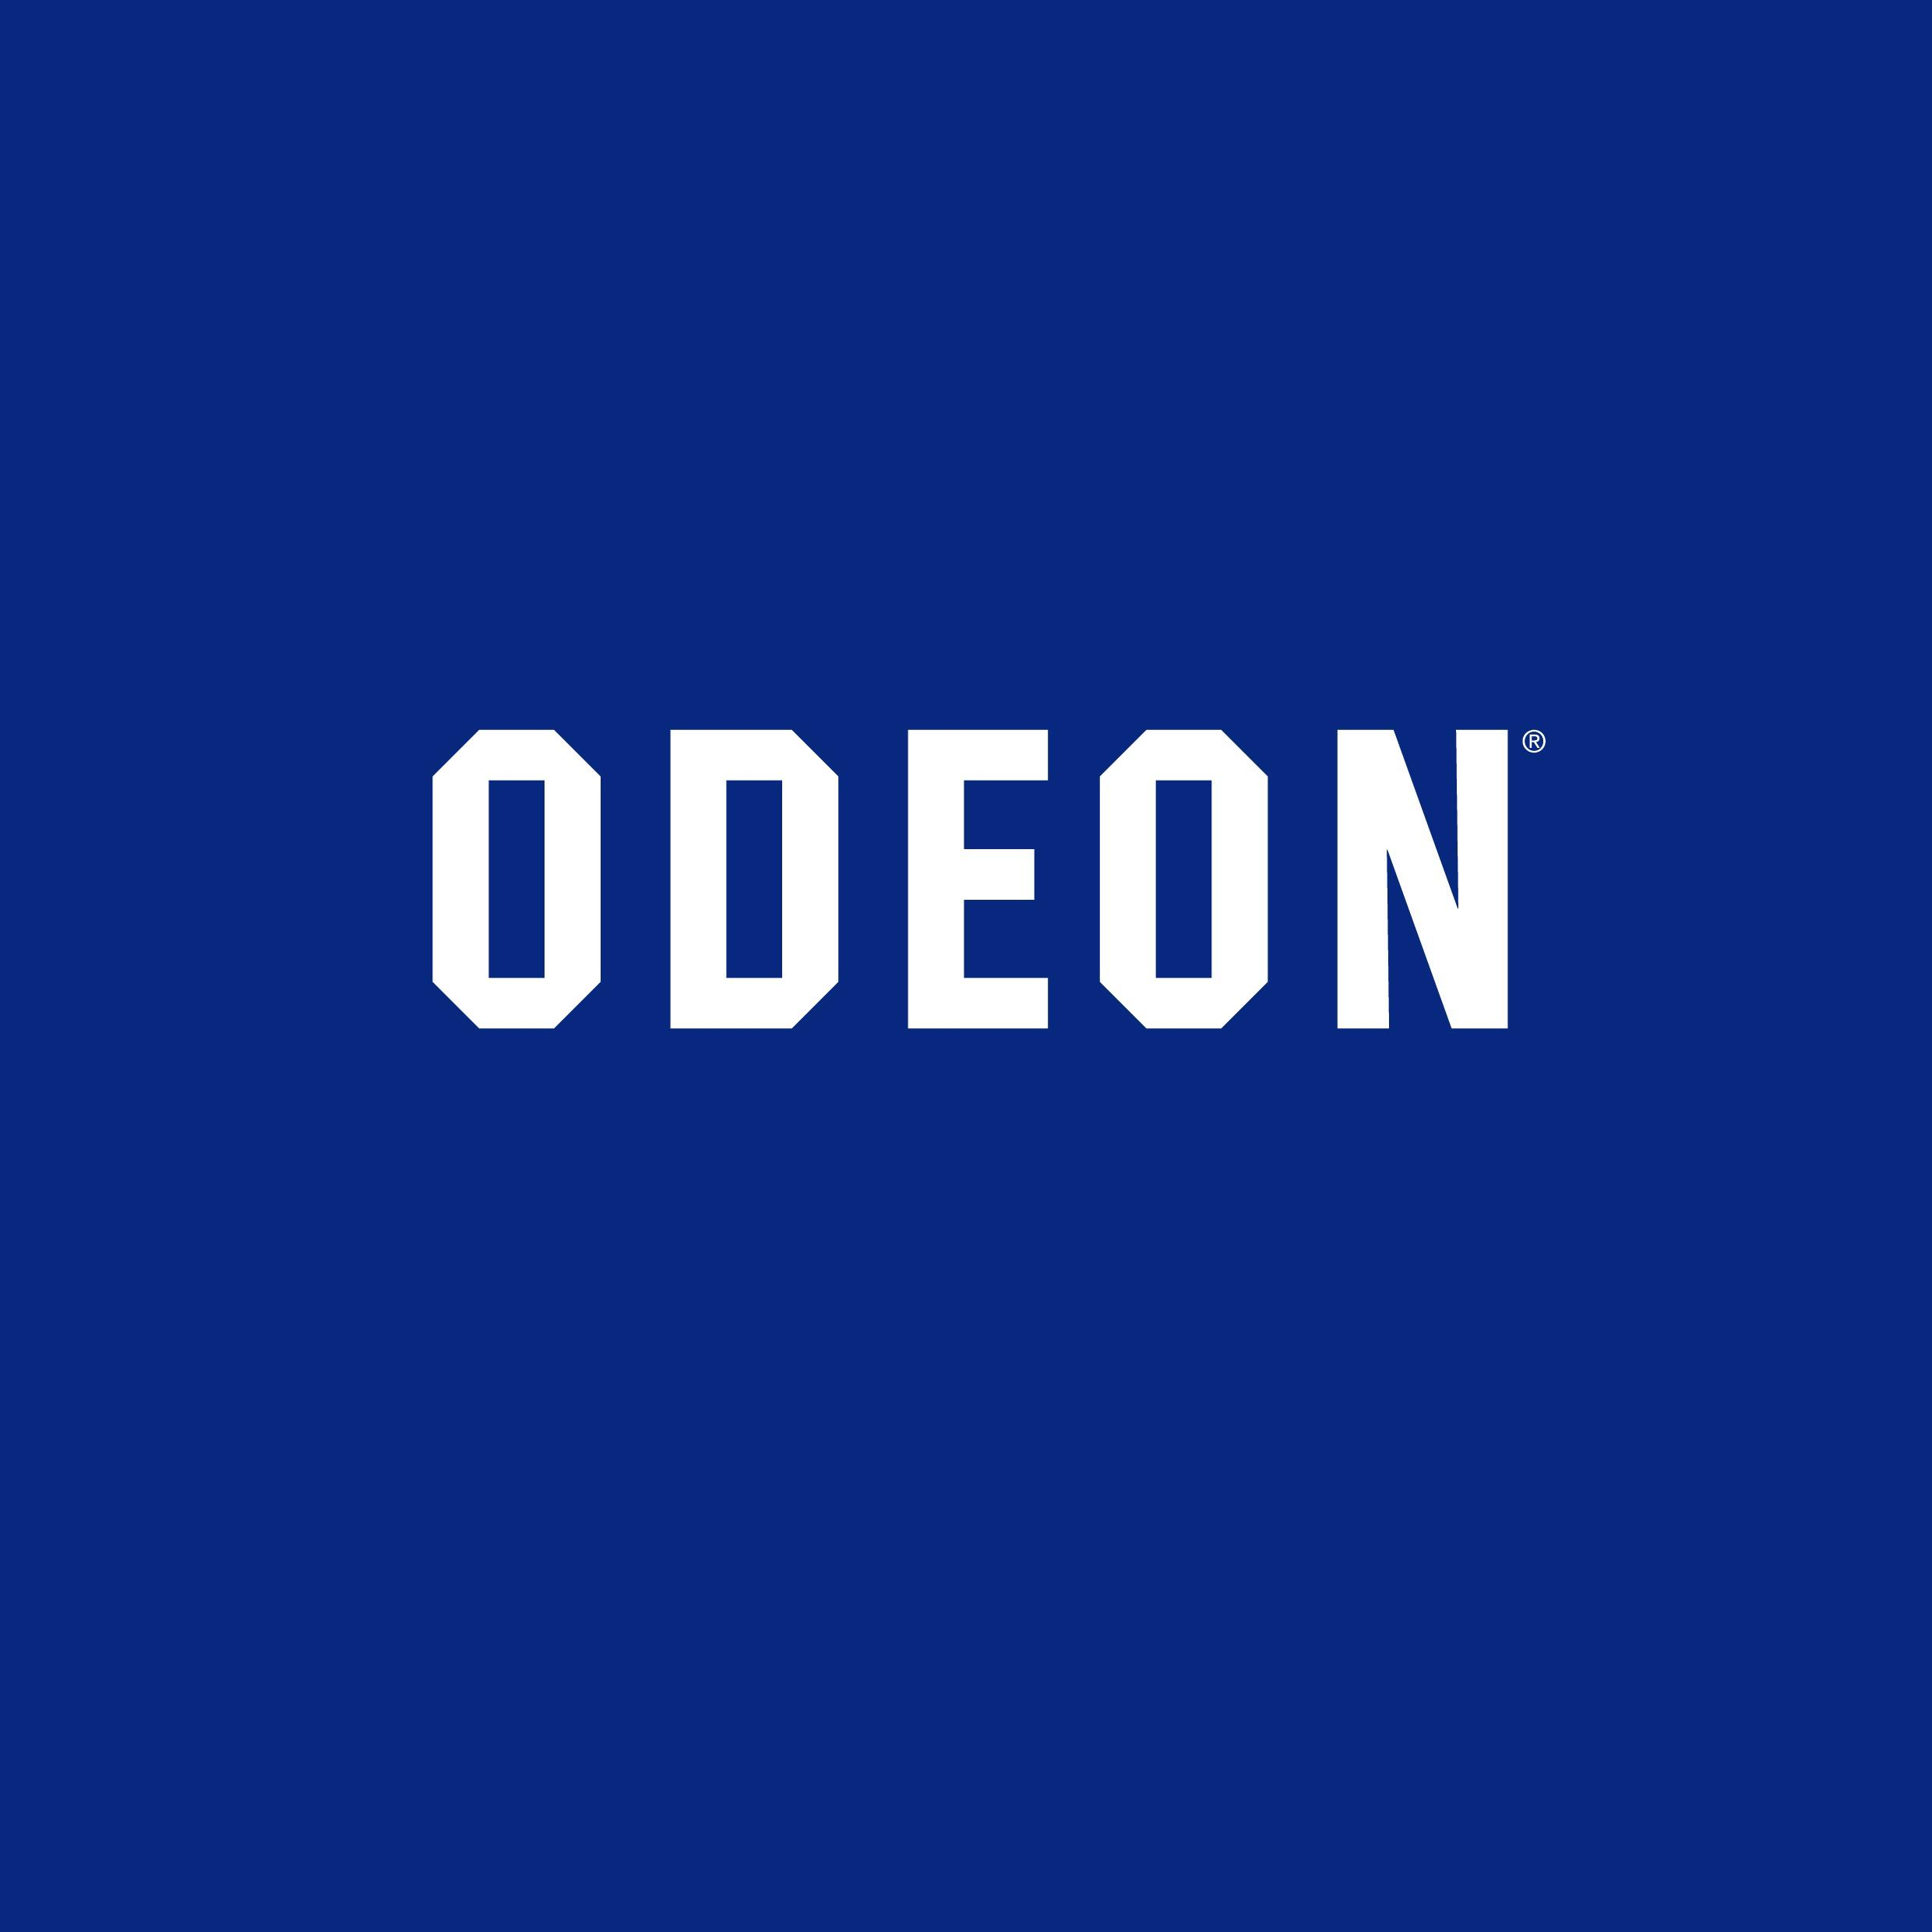 ODEON Richmond - Richmond, London TW9 1TW - 03330 144501 | ShowMeLocal.com